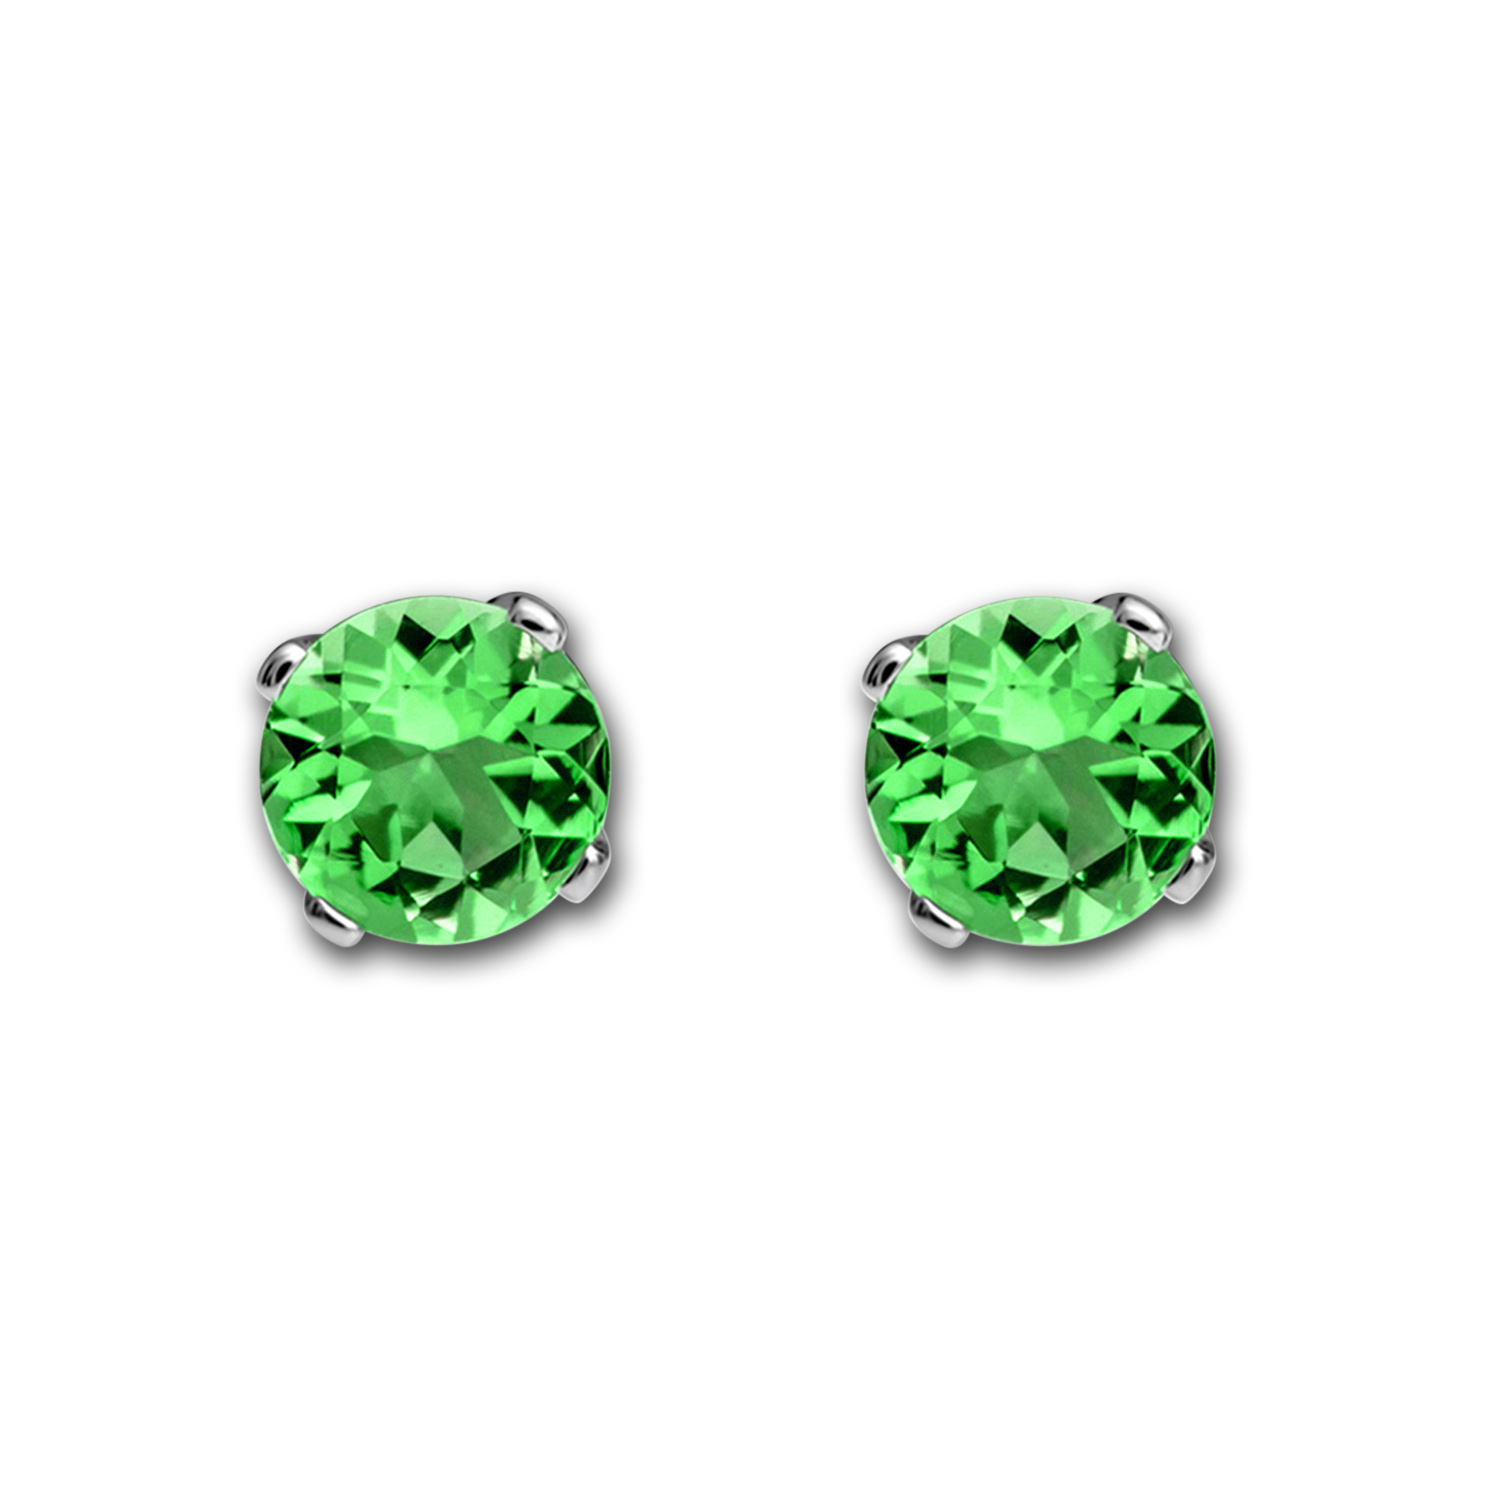 14k White Gold 4 mm Emerald Stud Earrings